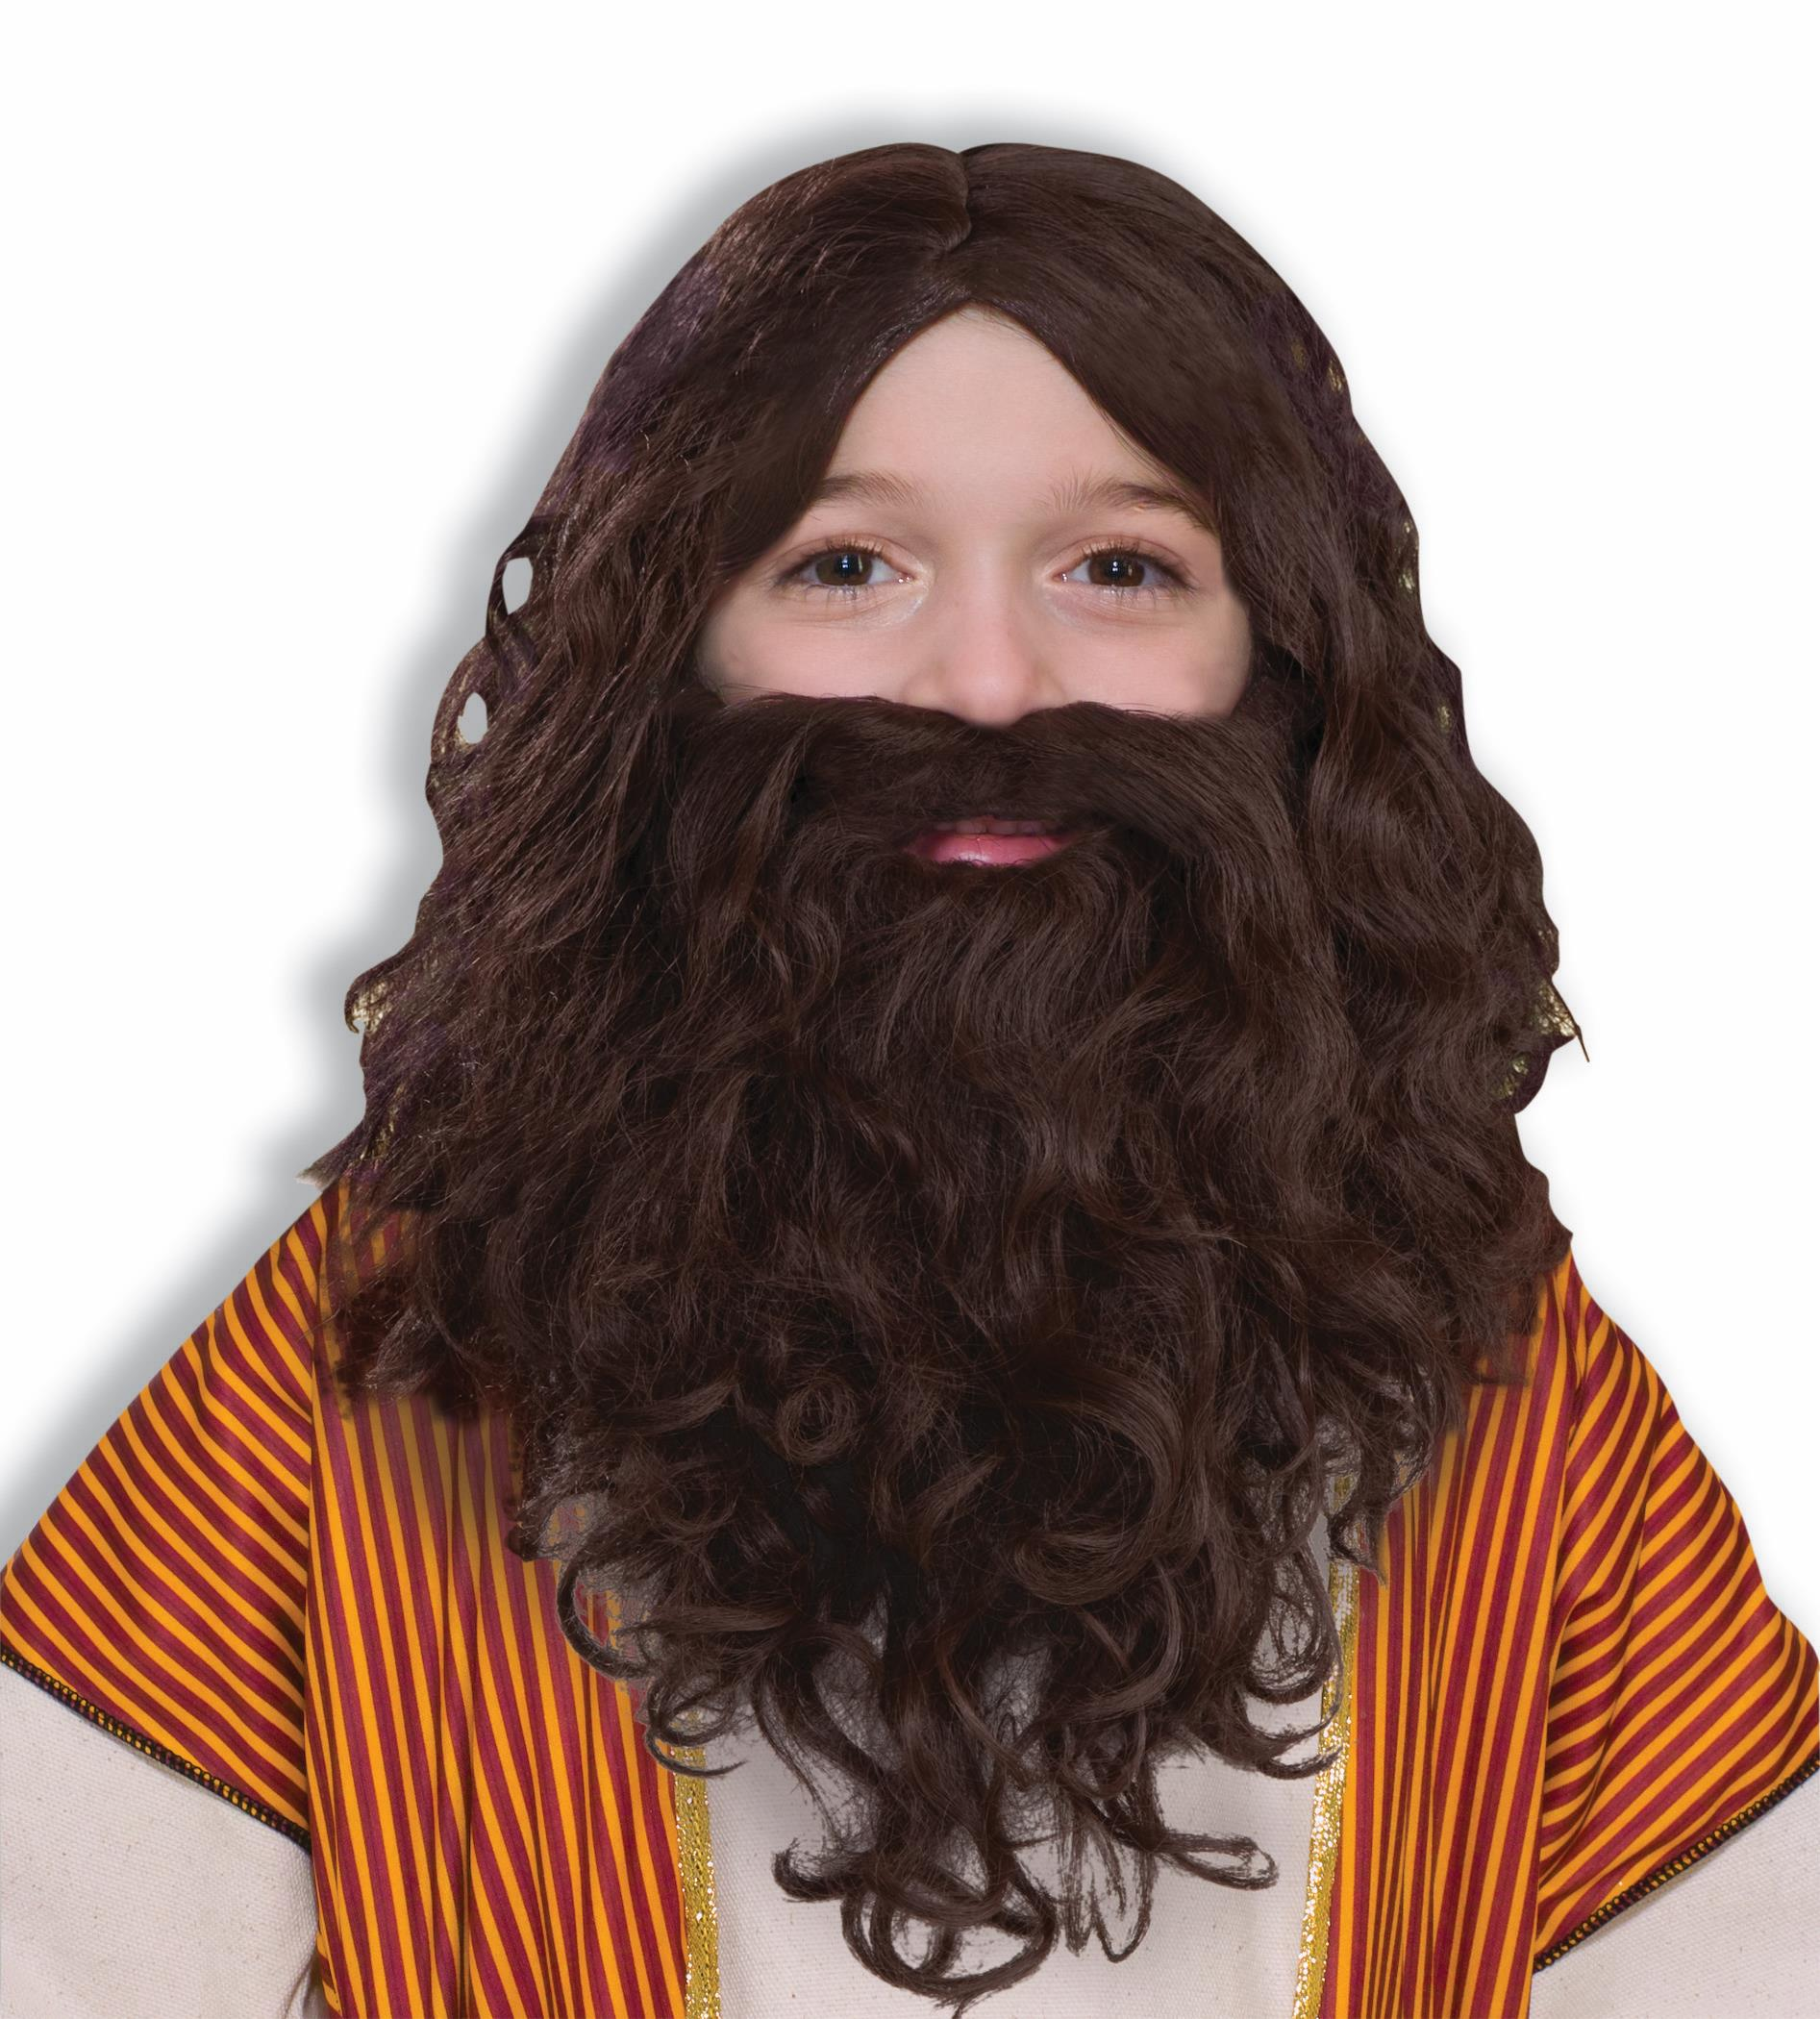 Biblical Jesus Wig Beard Set Child Brown Curly Curls Hair Costume Accessory